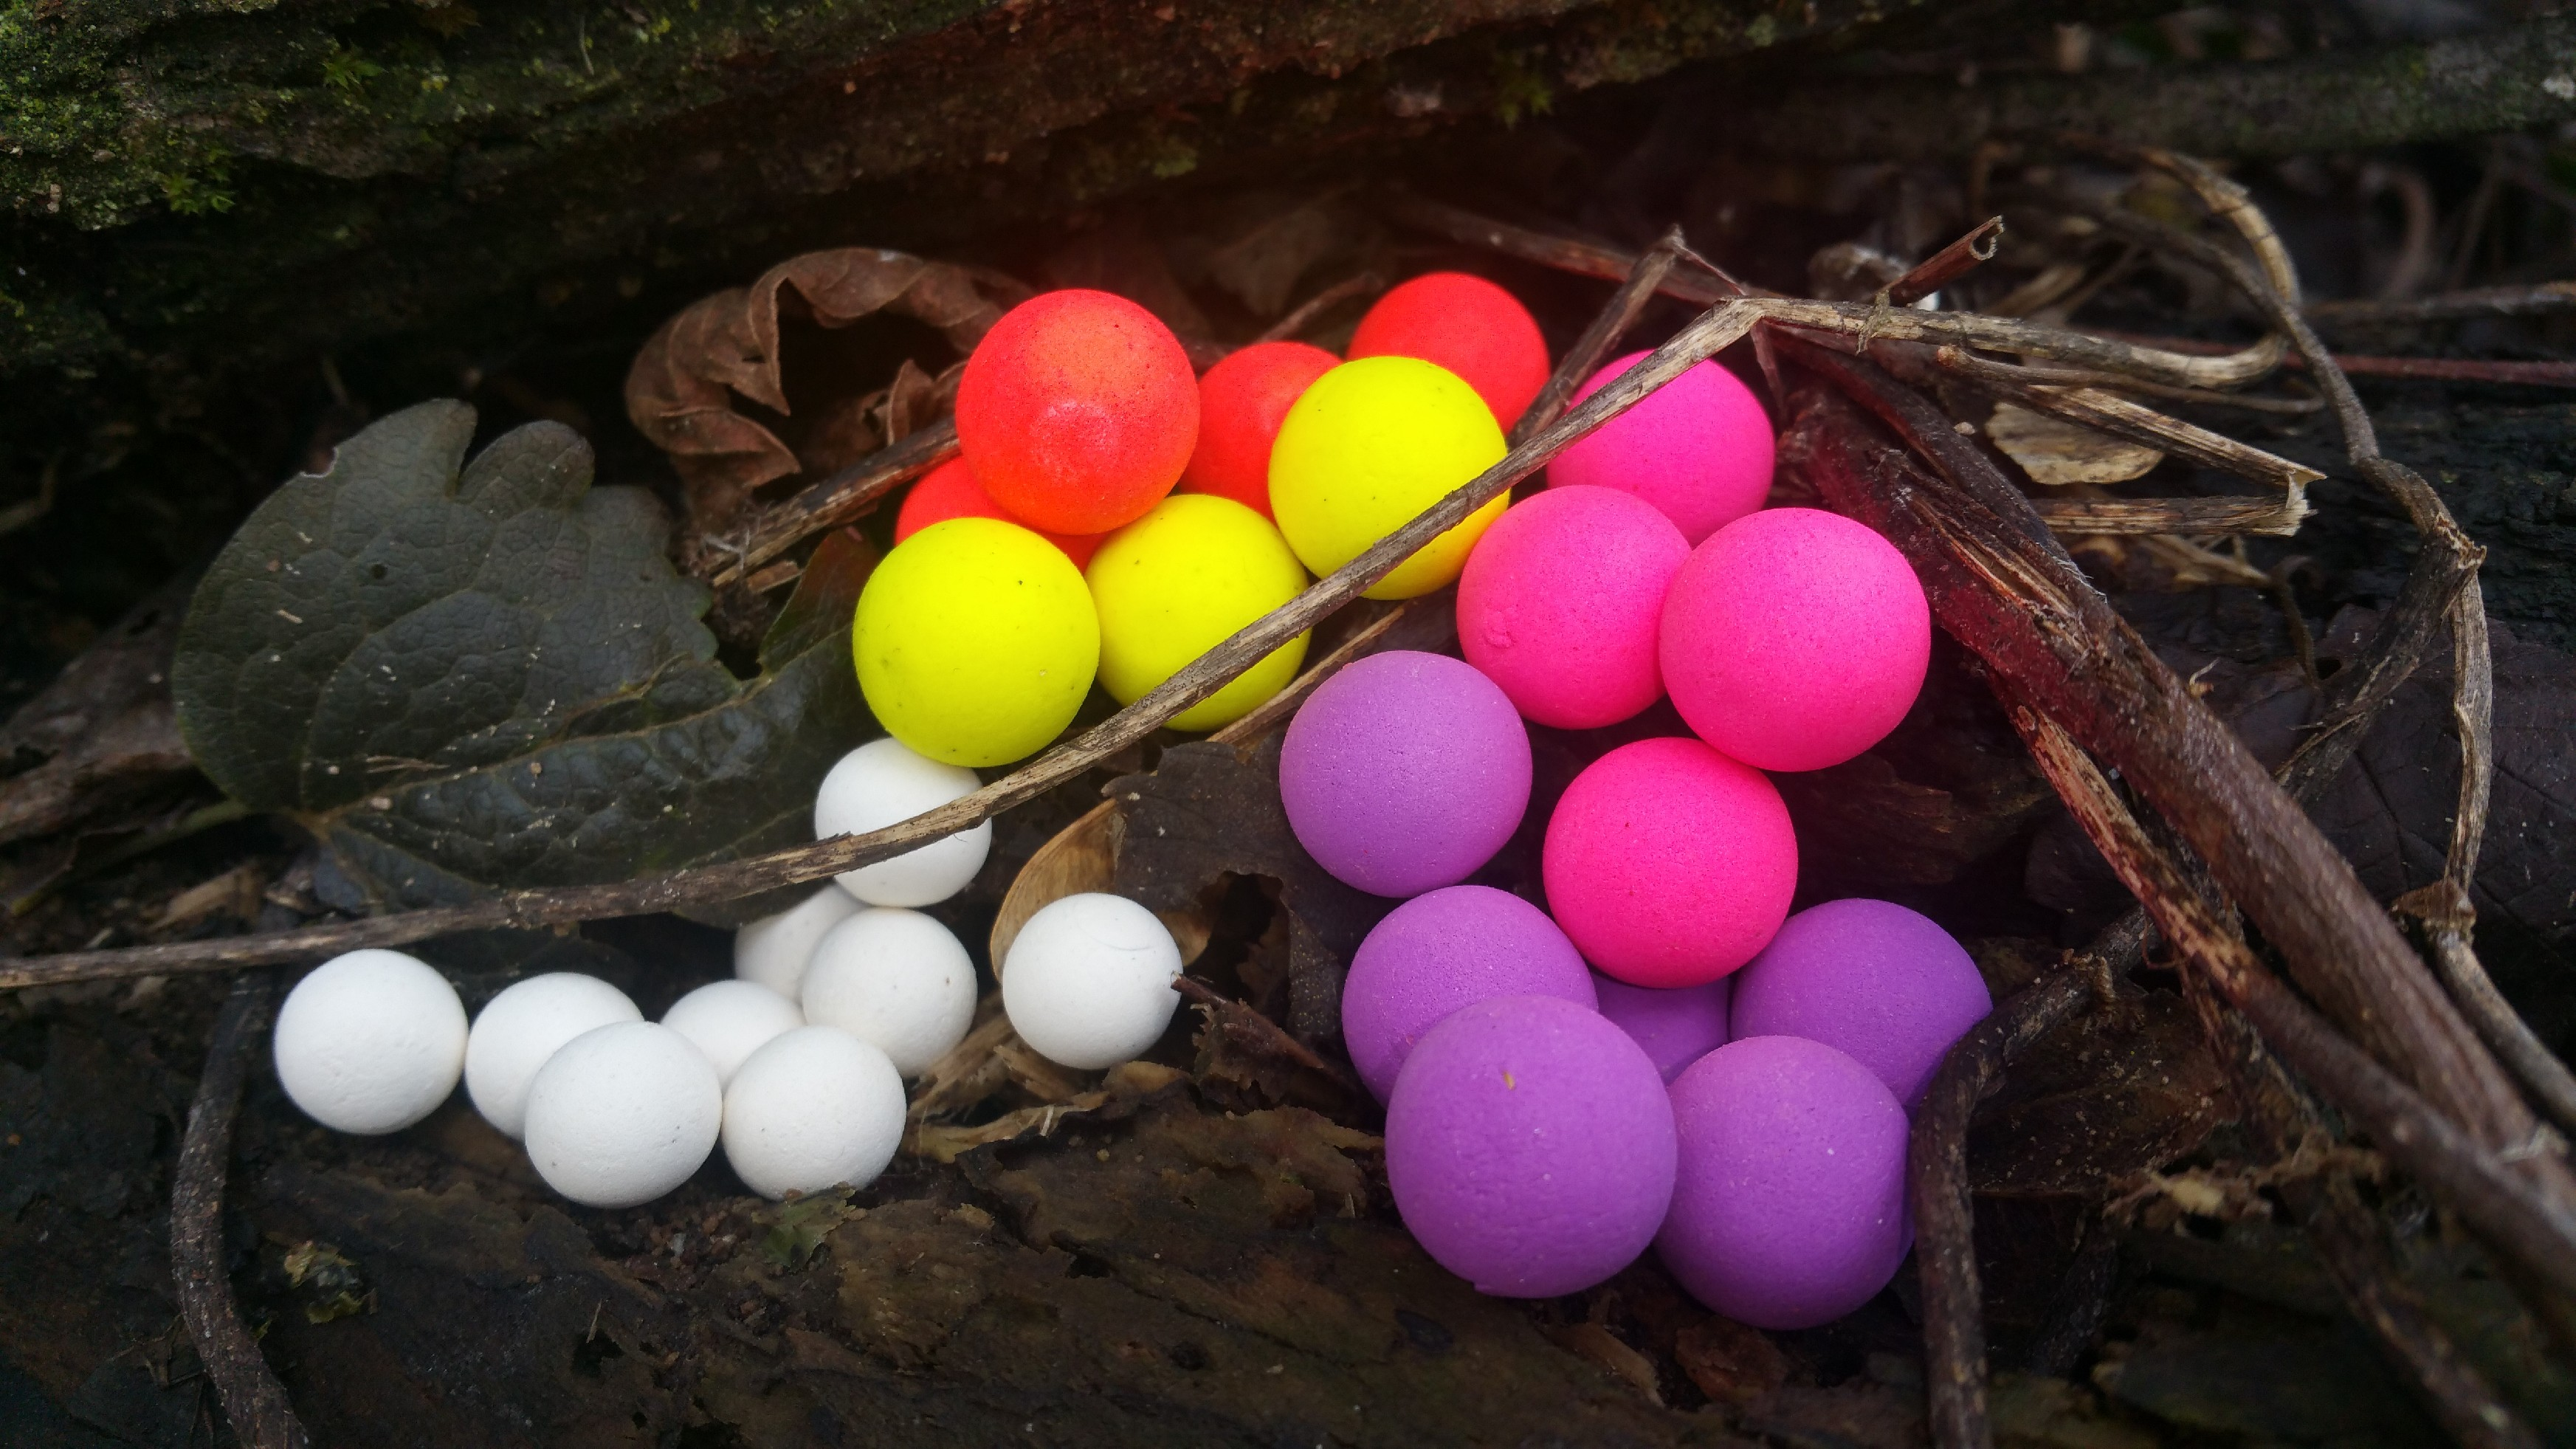 Boilies pop up